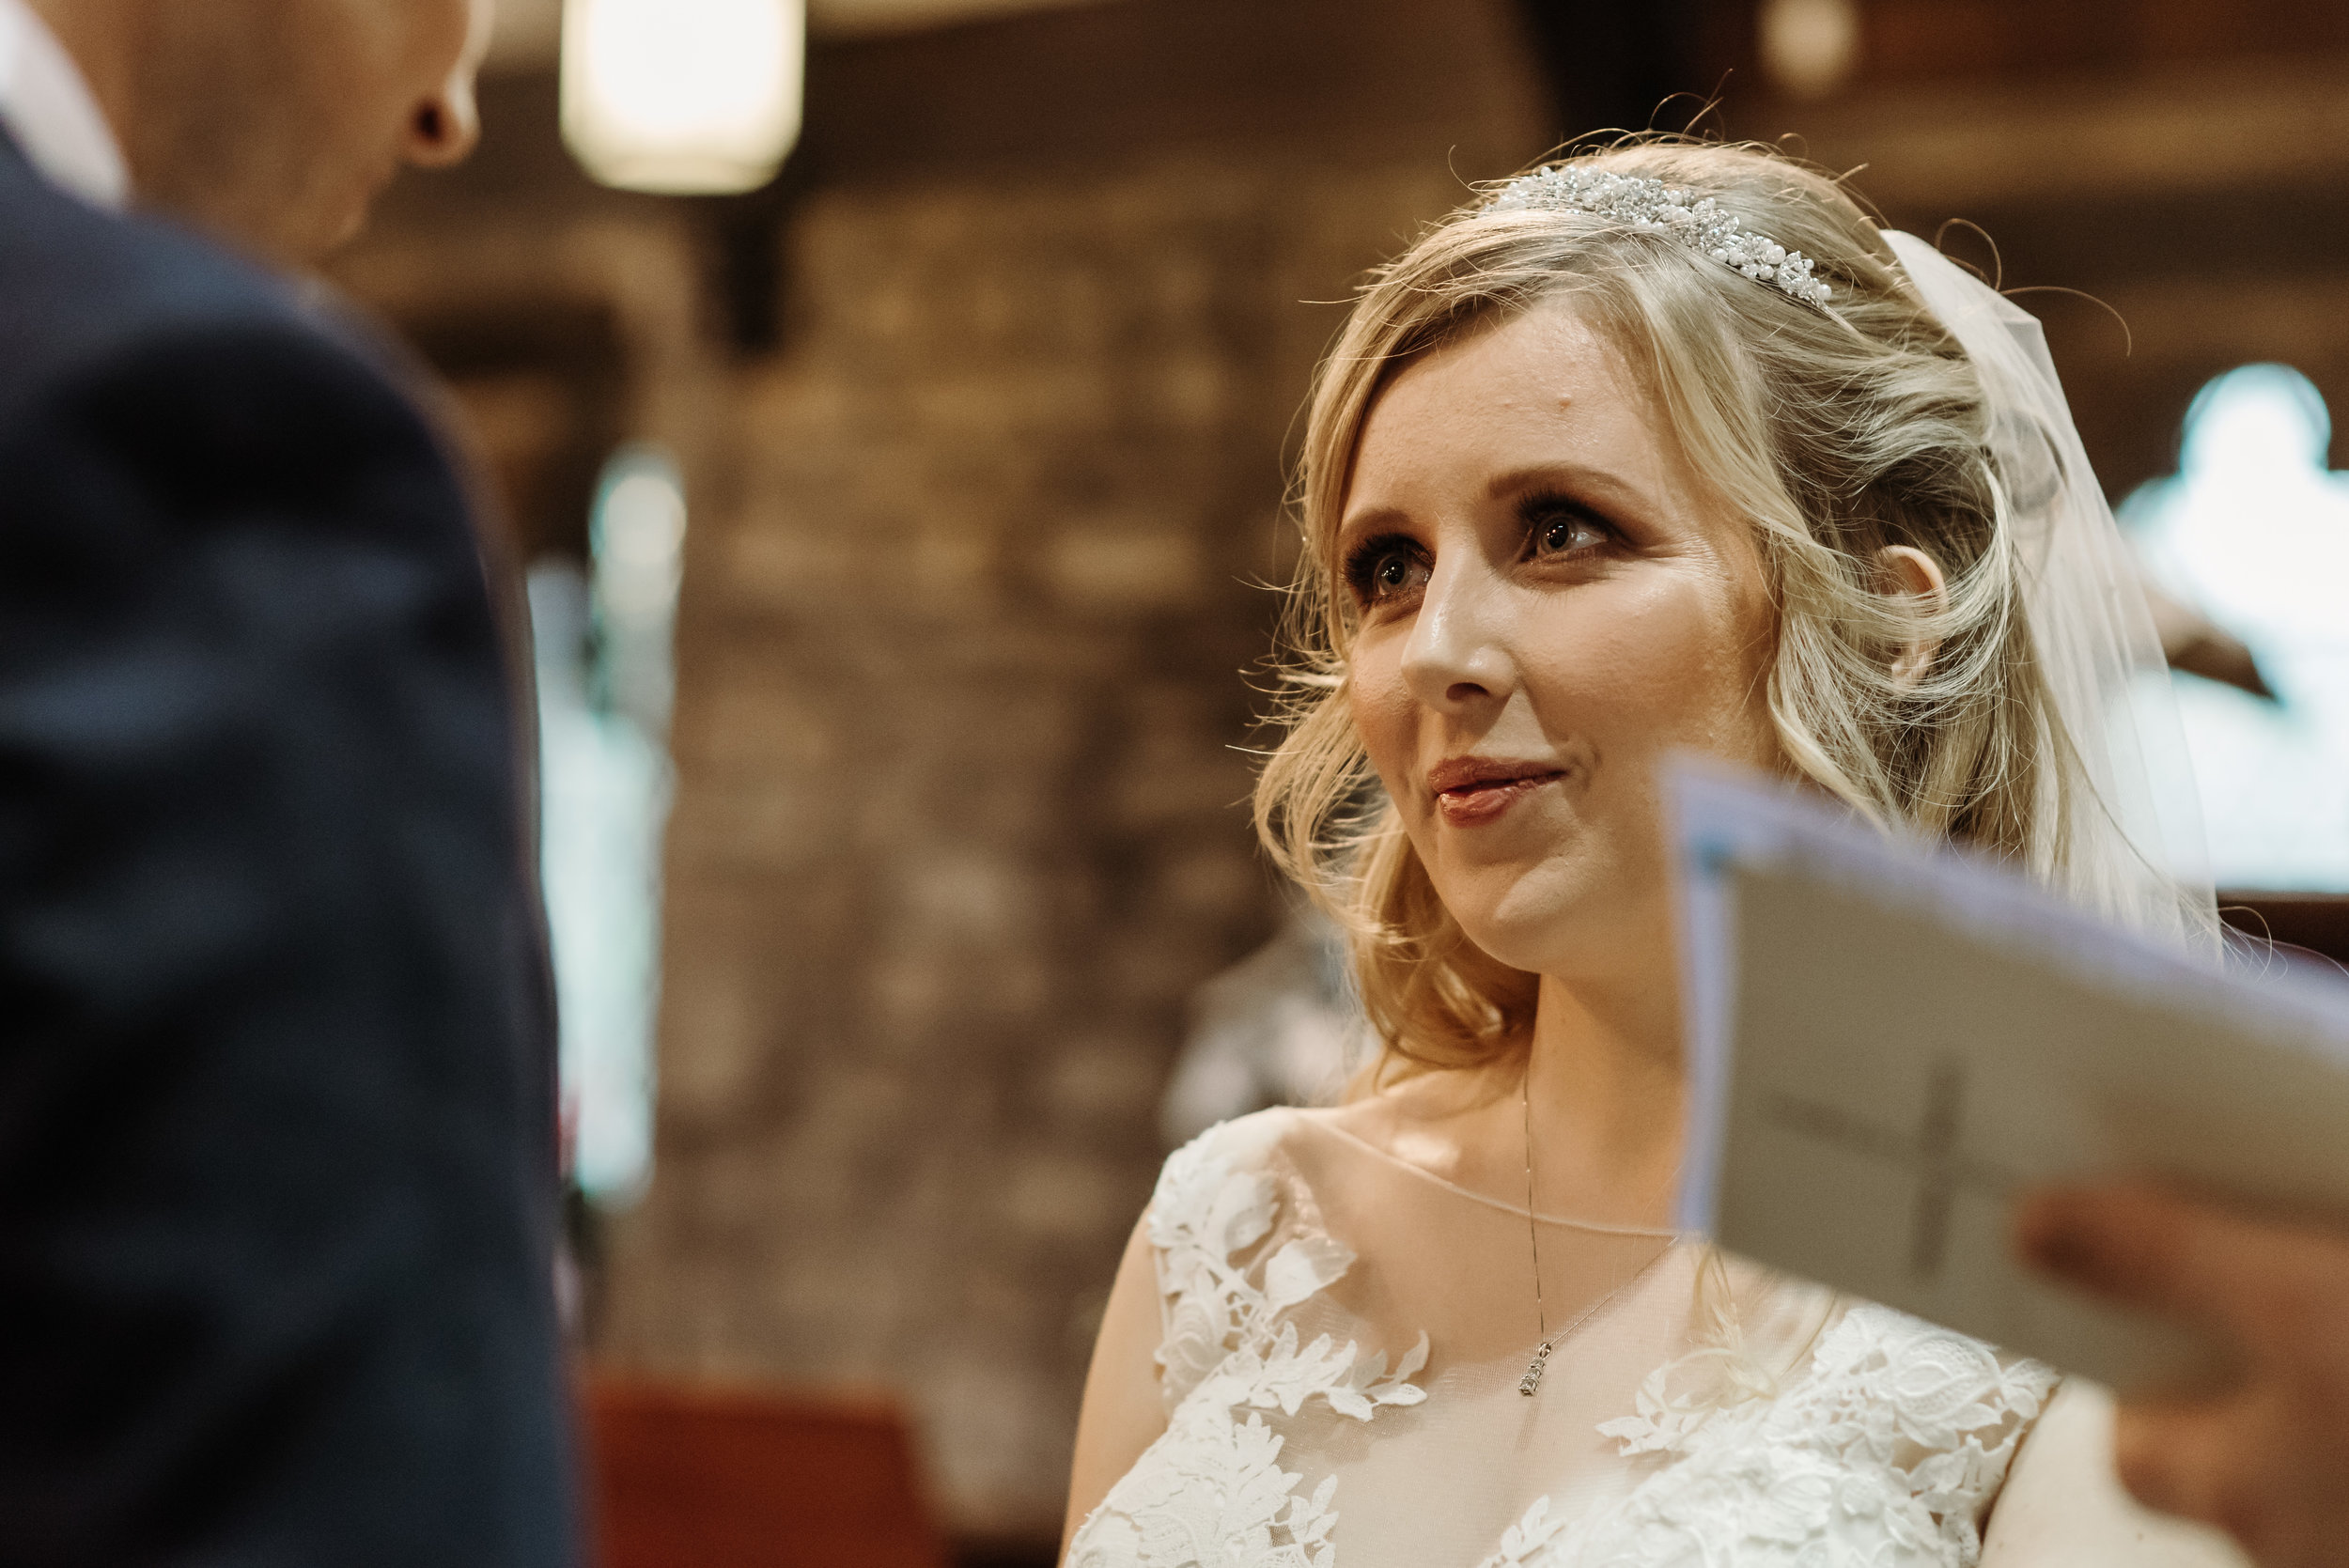 The look of love - Clitheroe wedding photographer